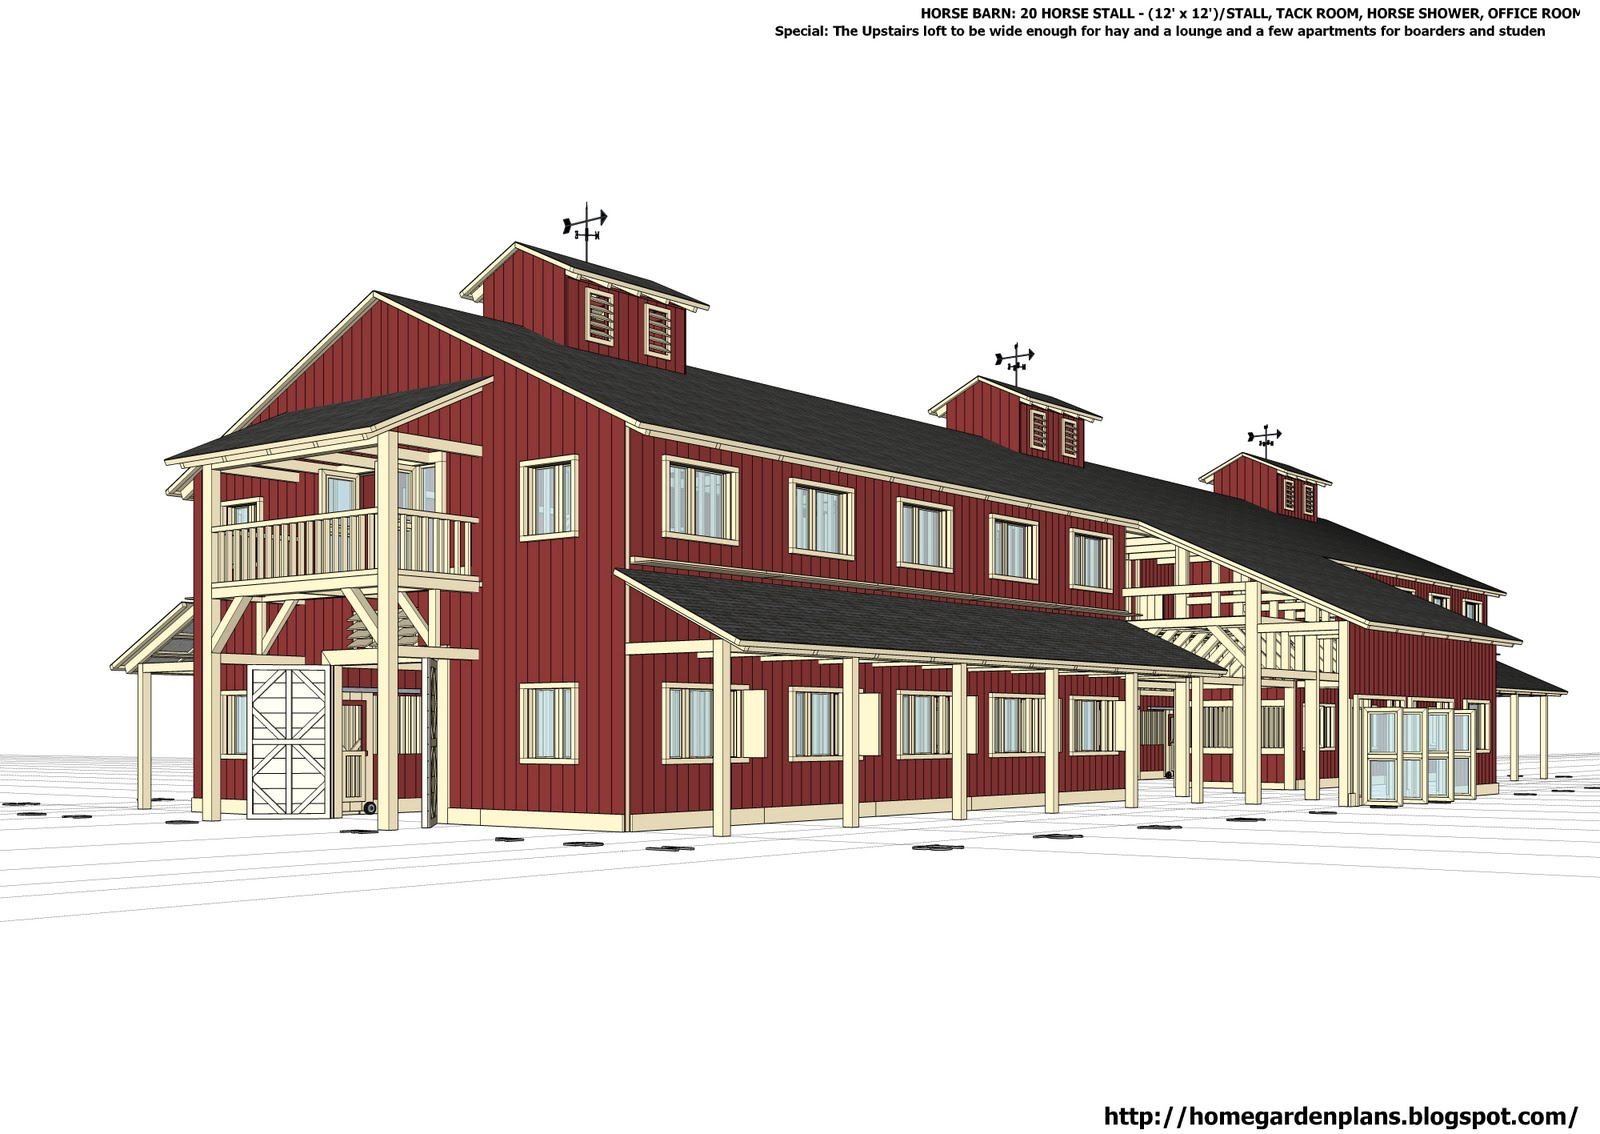 Home garden plans h20b1 20 stall horse barn plans for House horse barn plans